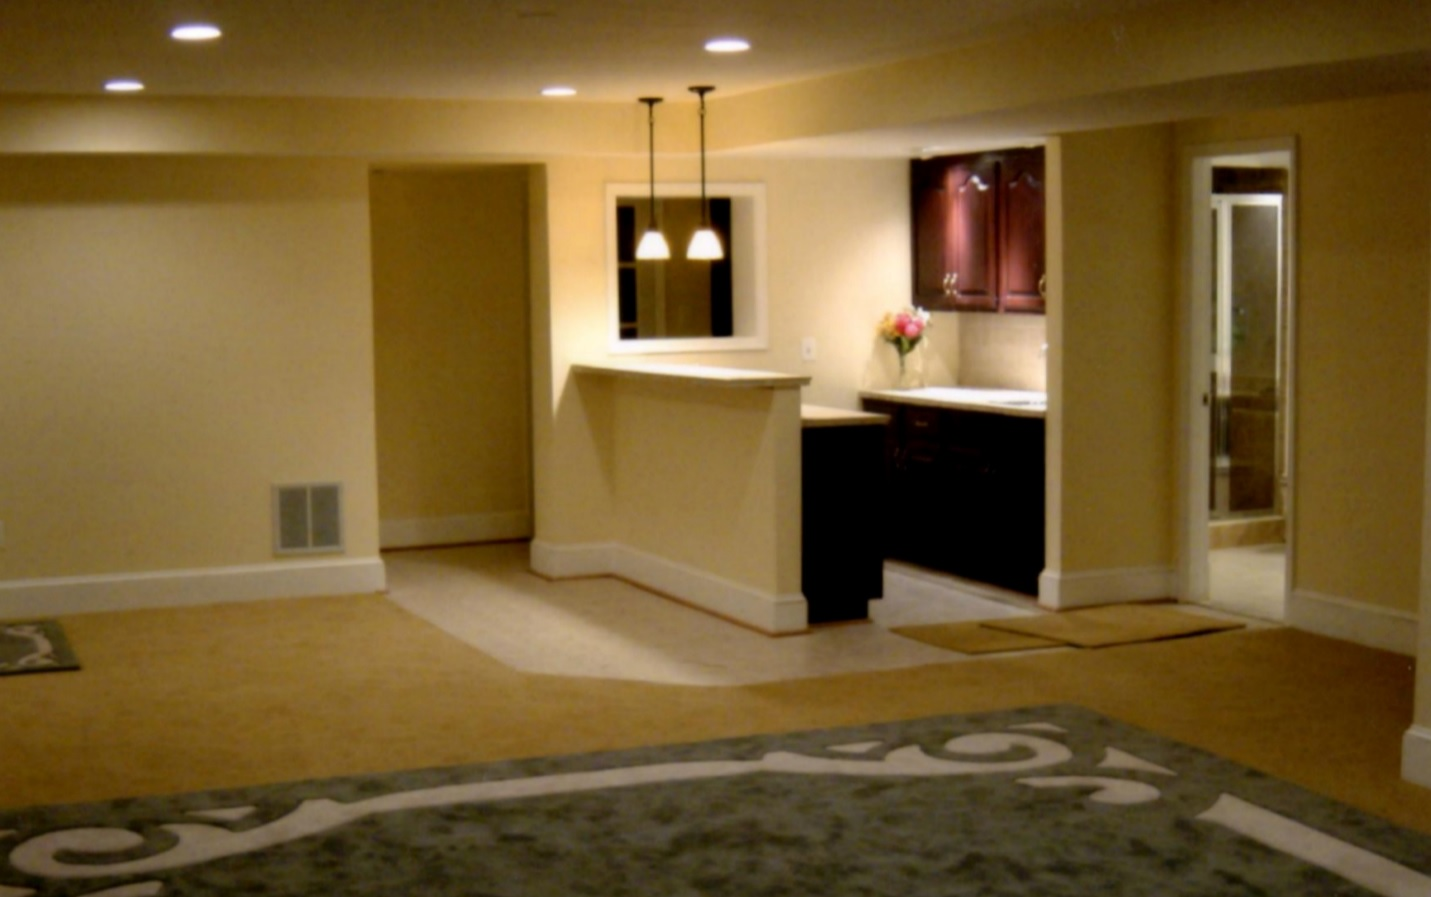 Northern Virginia home remodeling